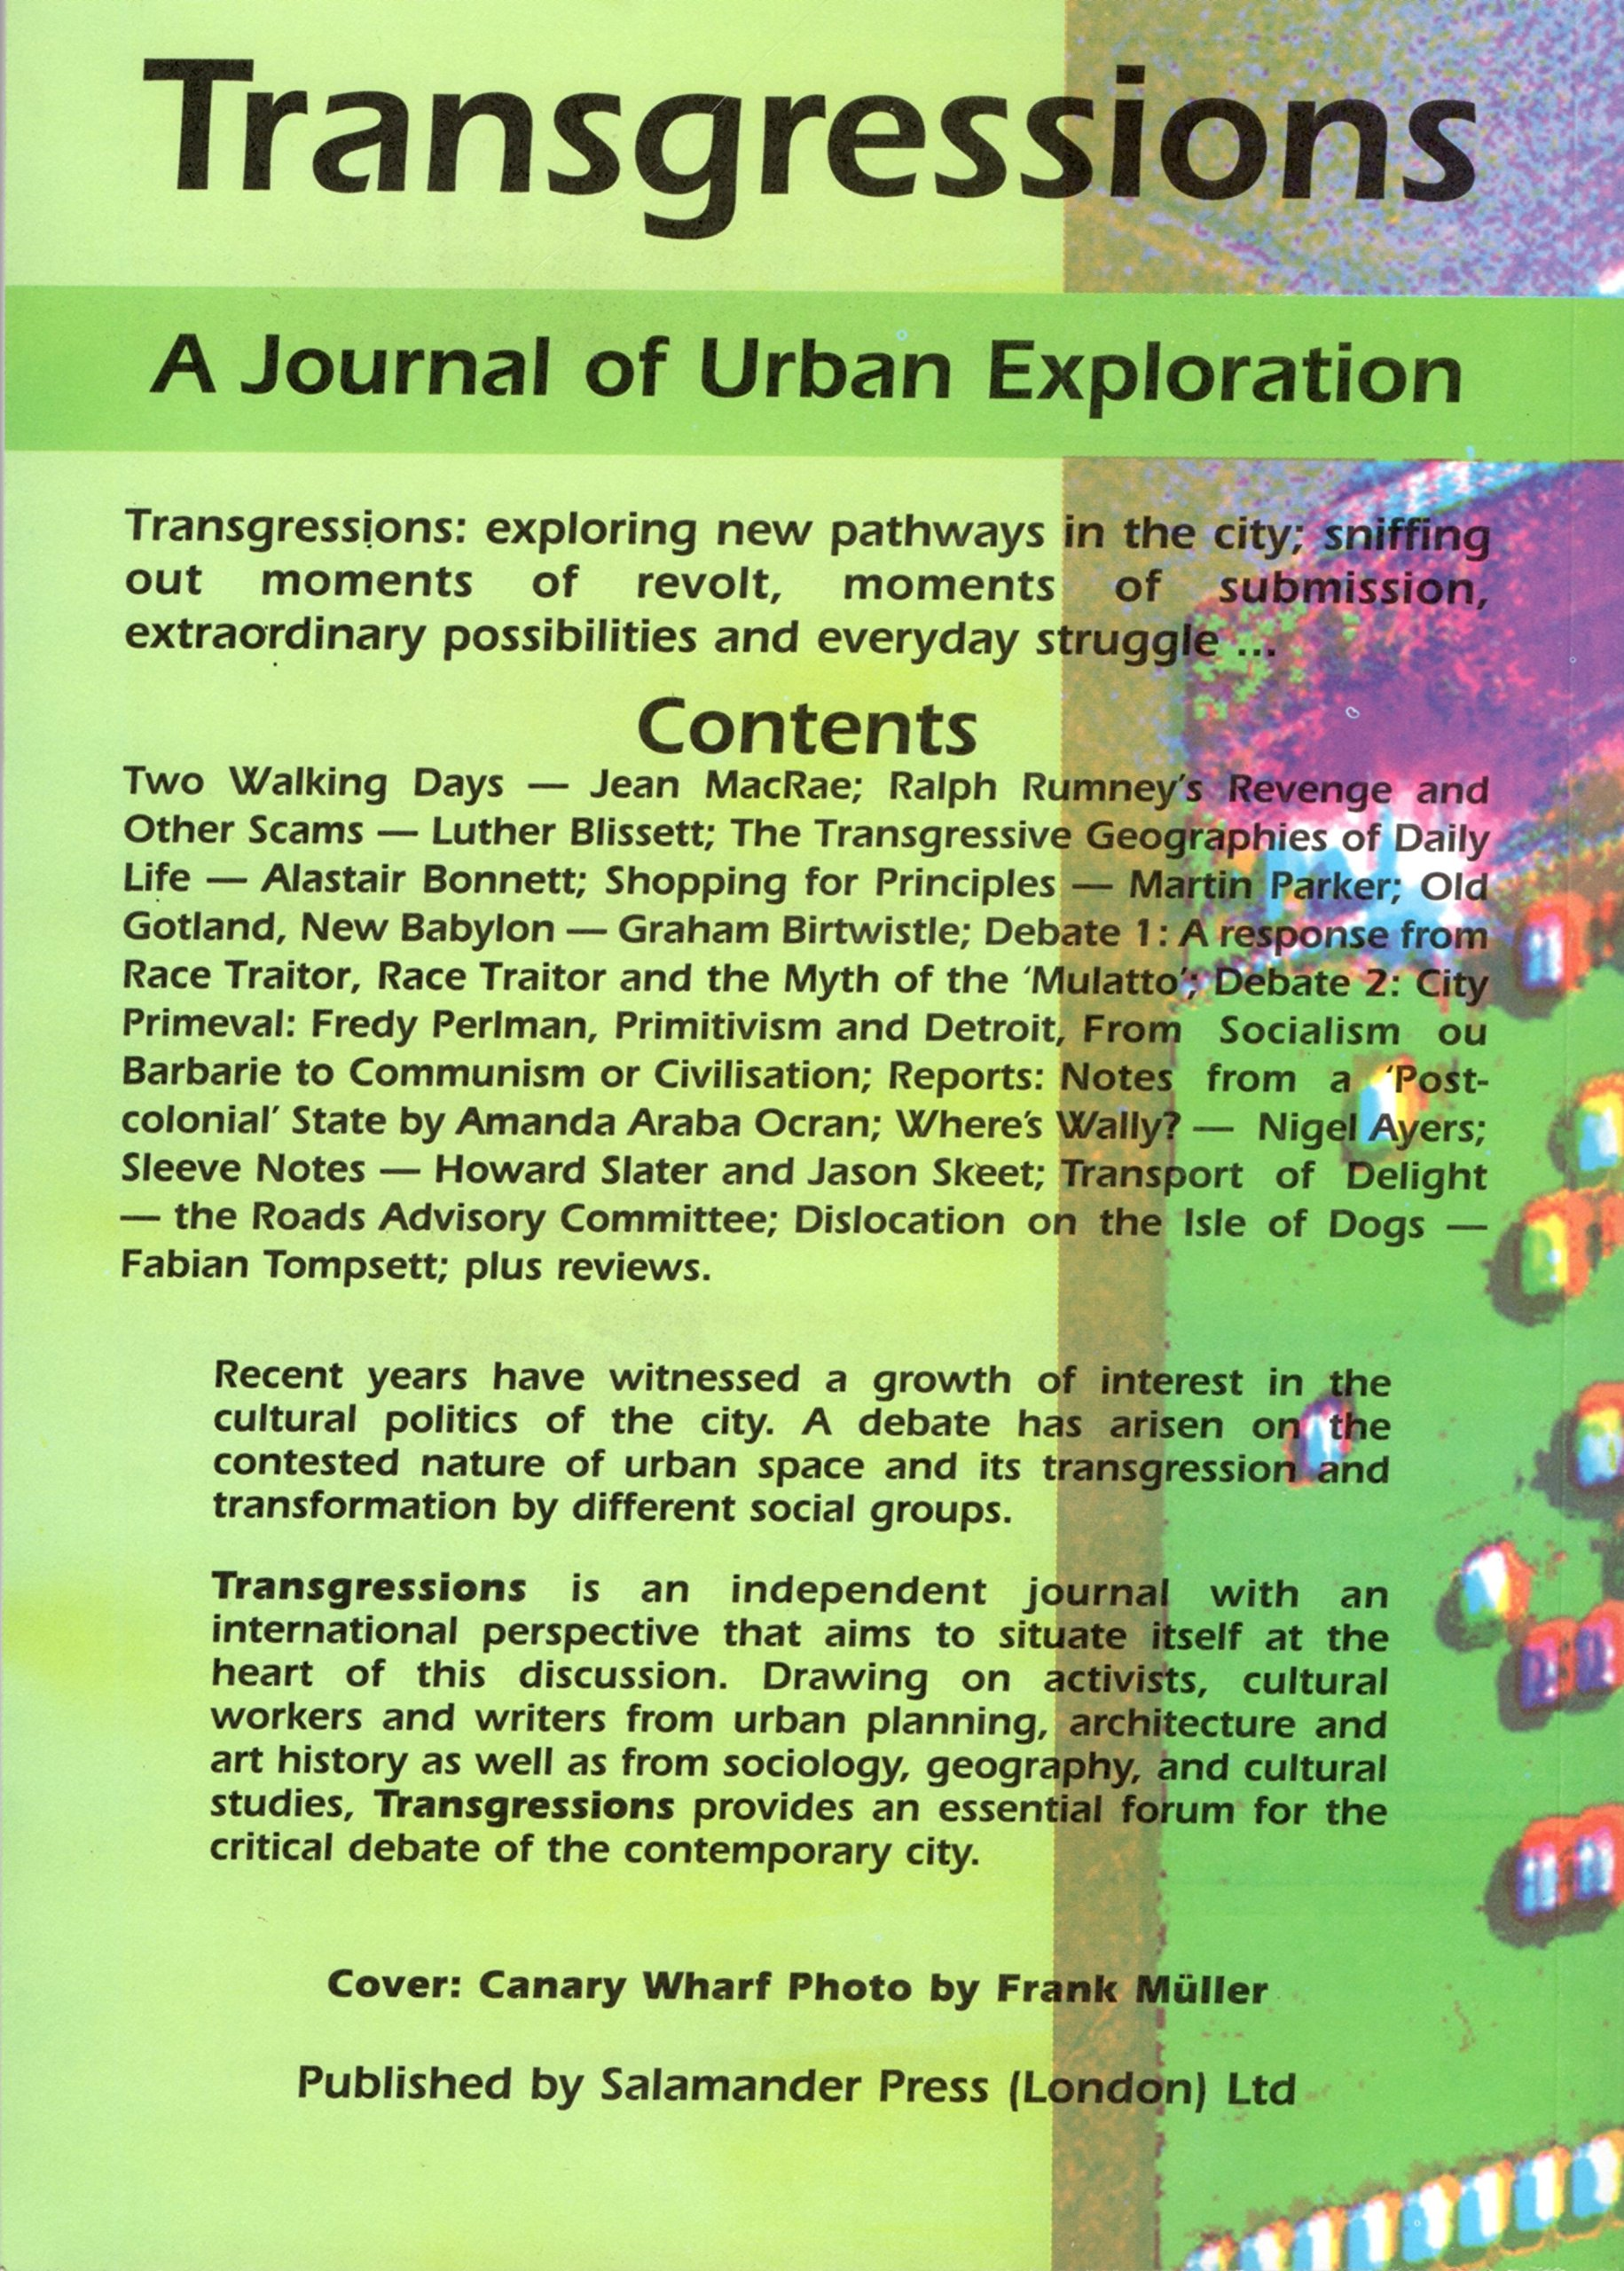 Transgressions: a Journal of Urban Exploration  Issue 2/3